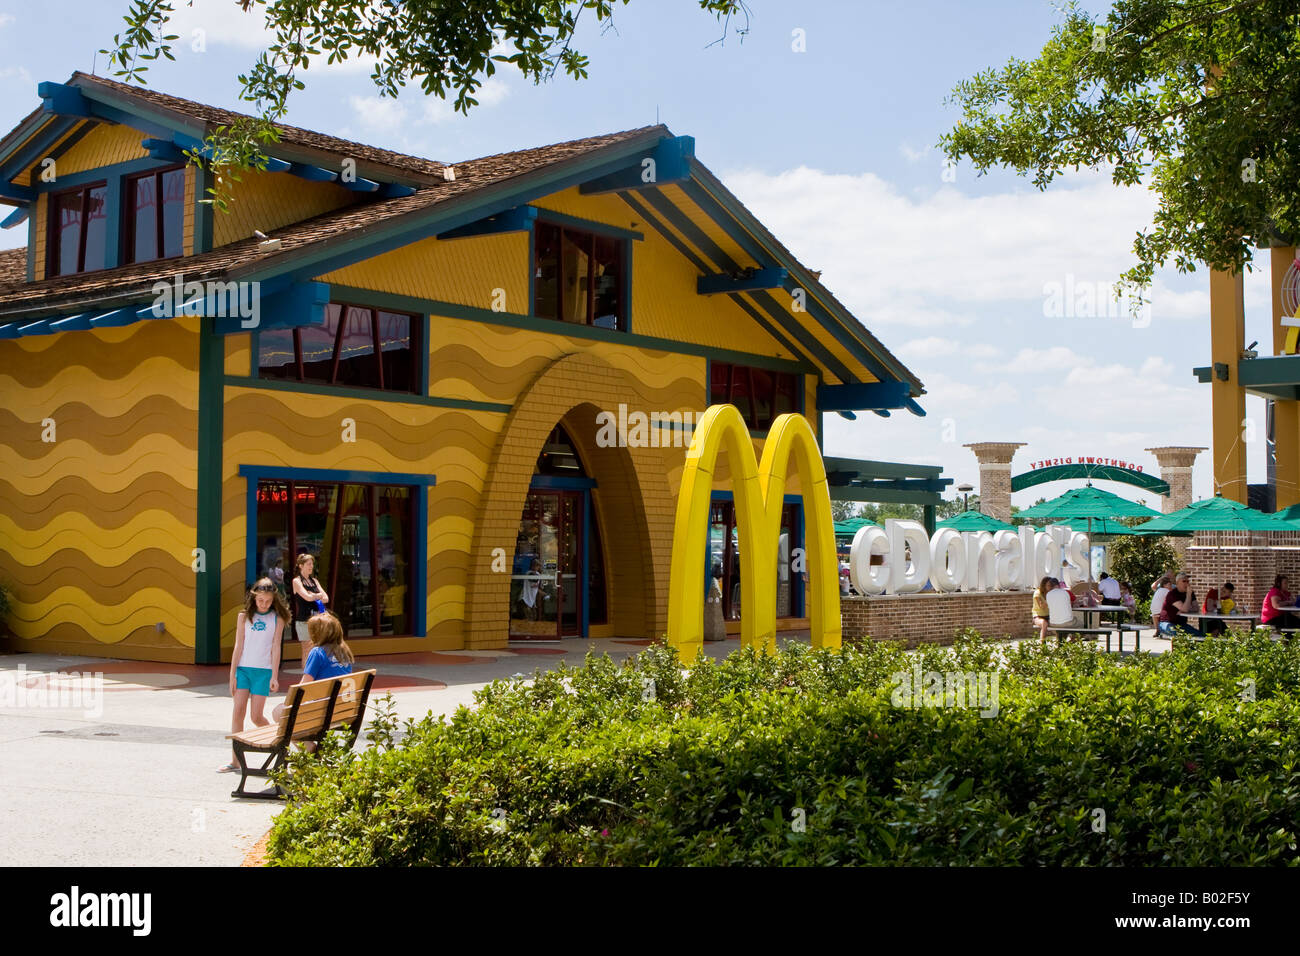 Fast Food Restaurants In Downtown Disney Orlando